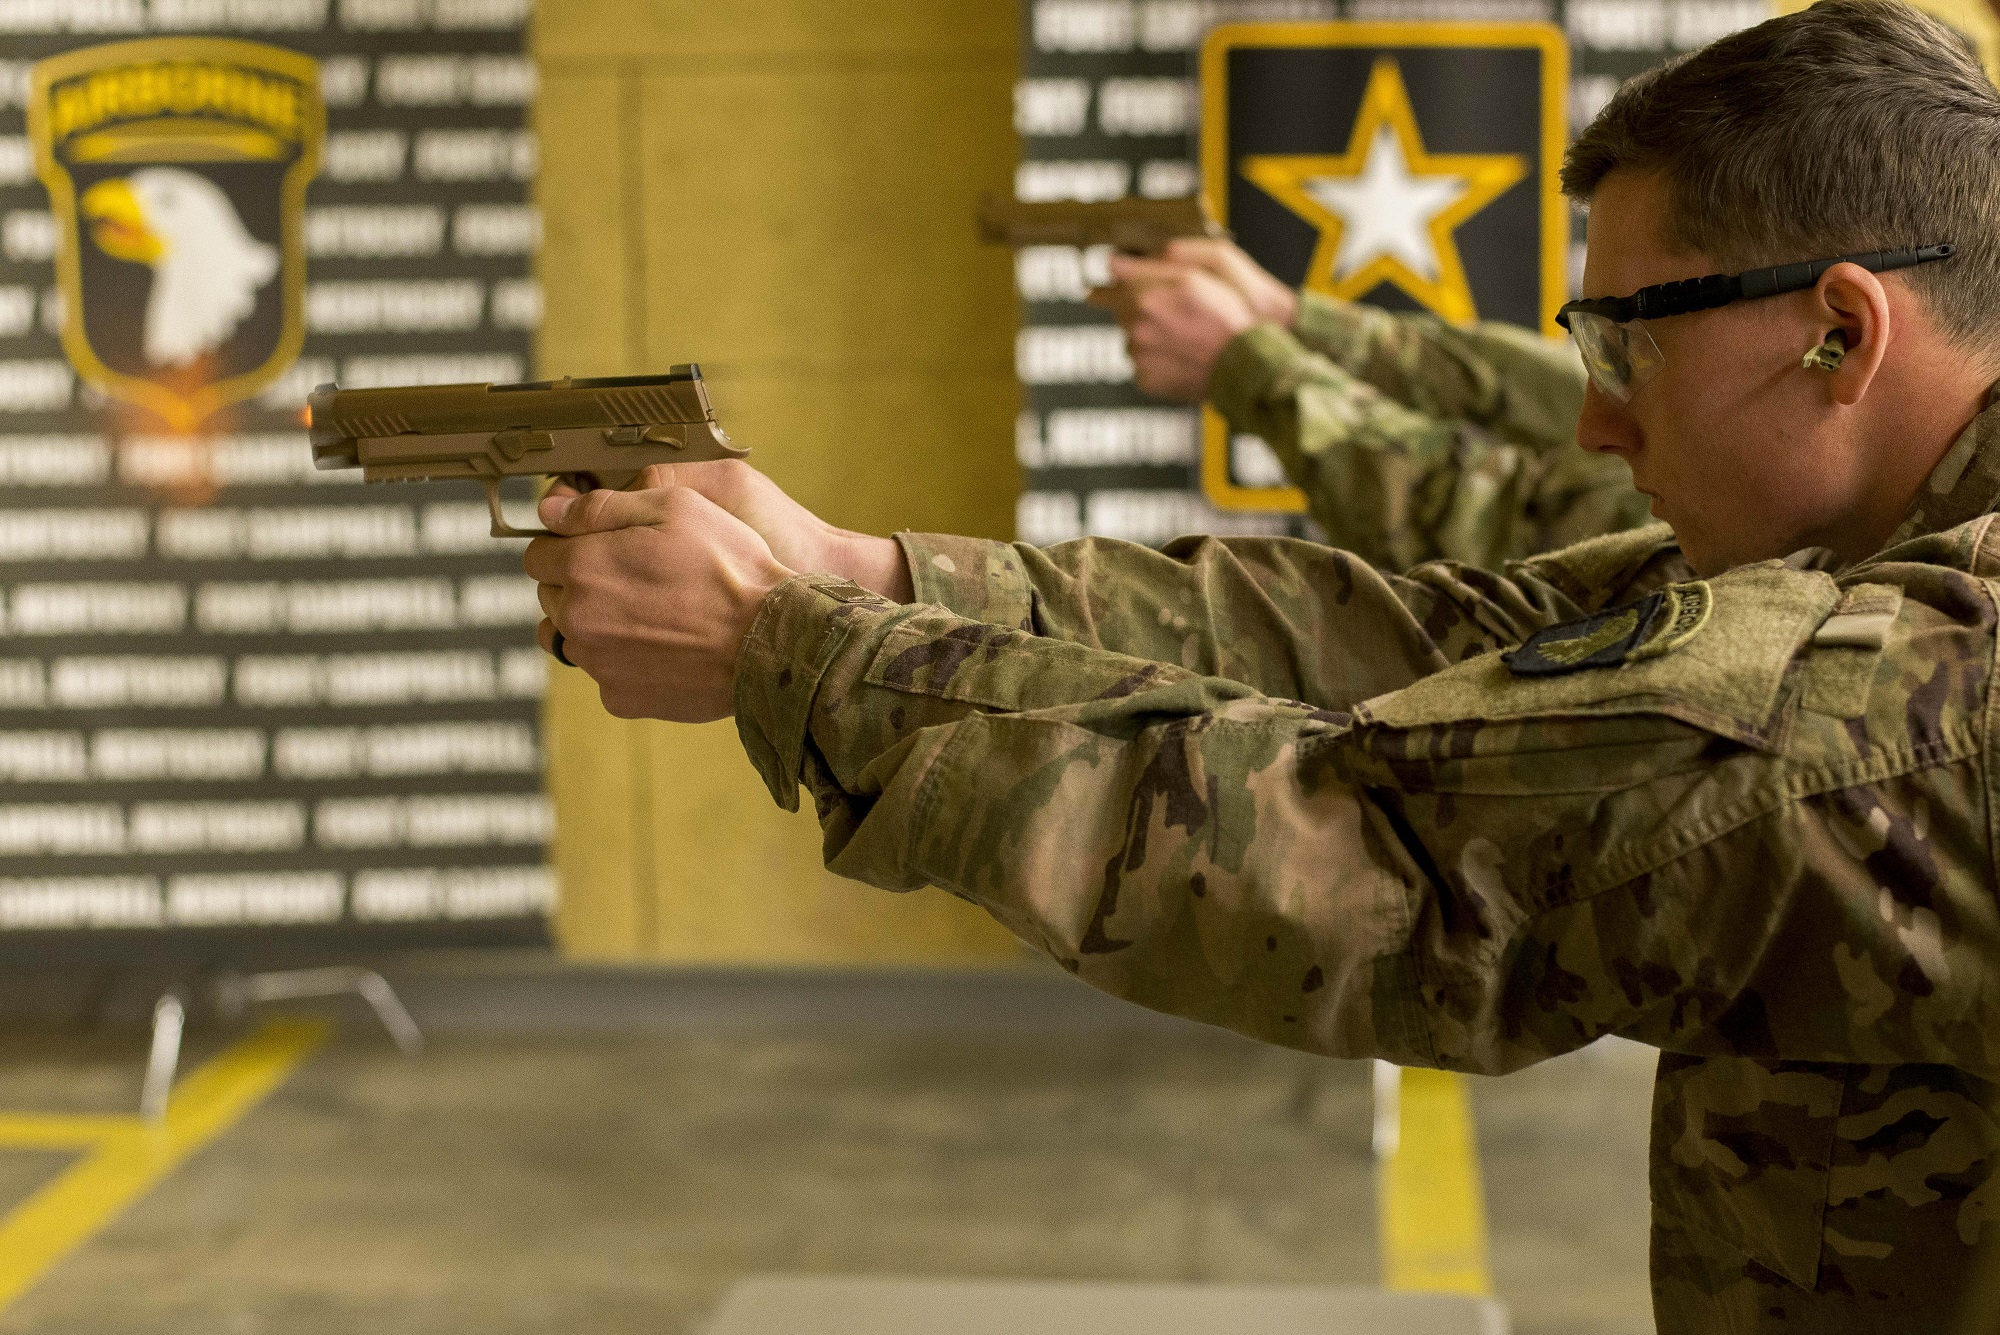 In a first, the Army's new handgun will be issued to team leaders